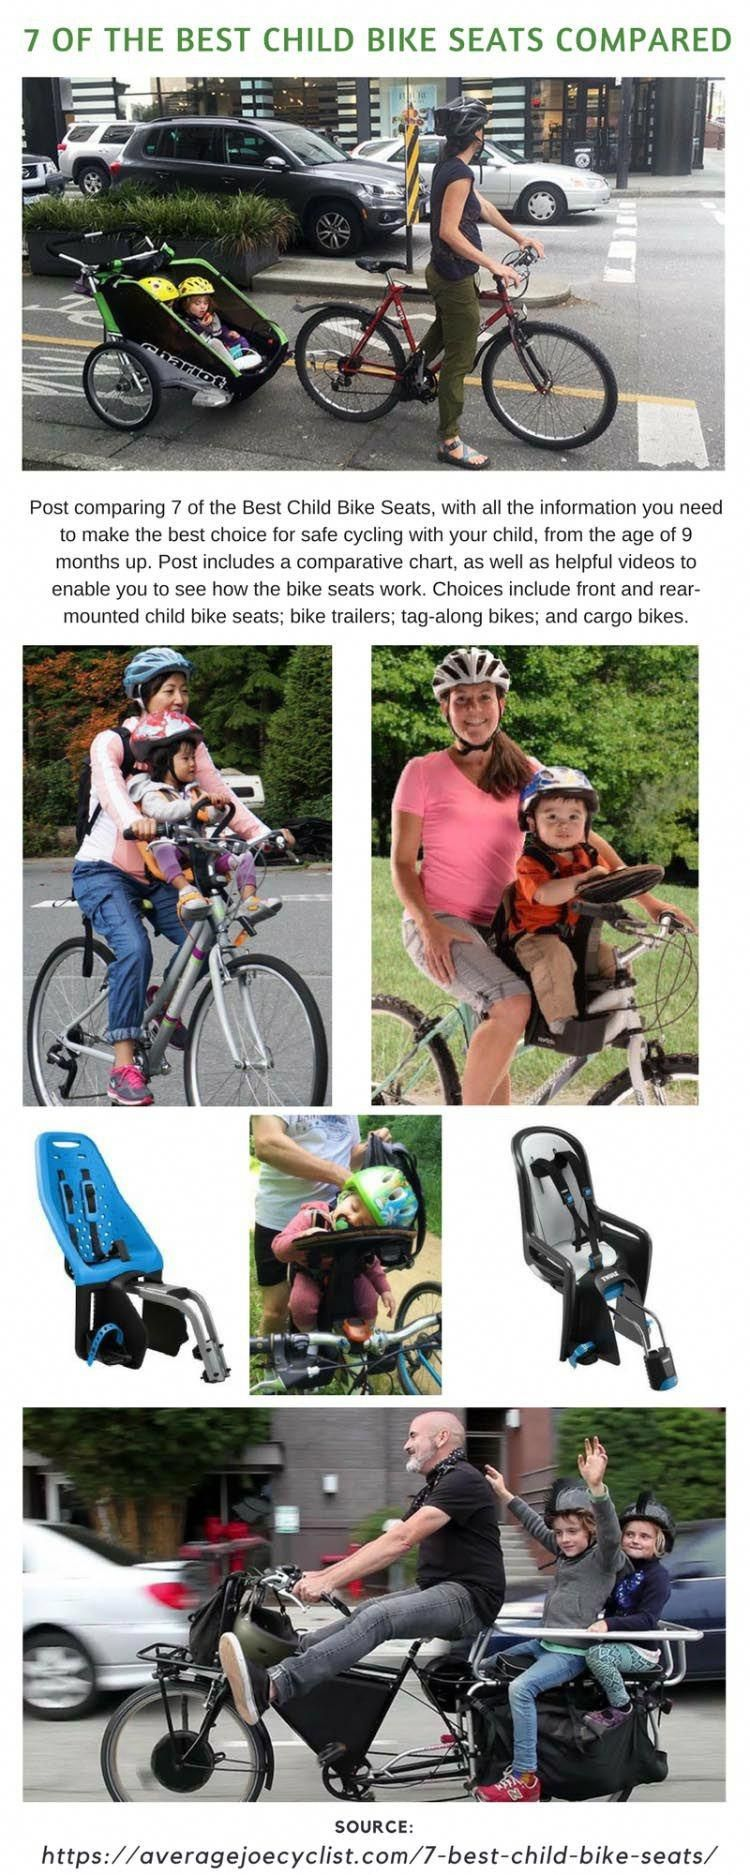 7 Of The Best Child Bike Seats Compared Coolbikeaccessories